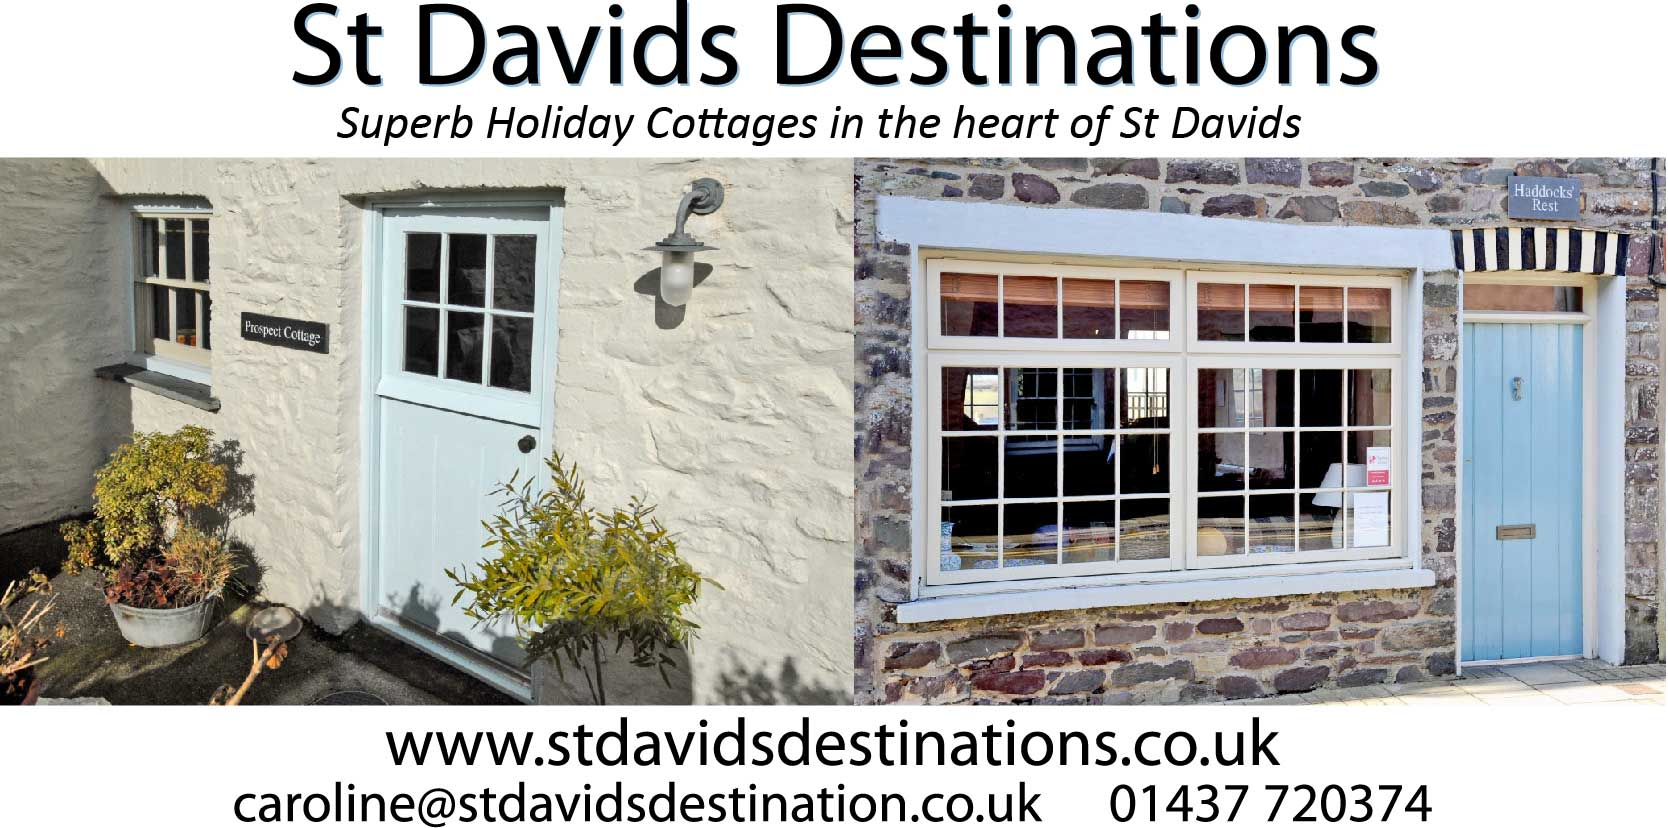 St Davids Destinations